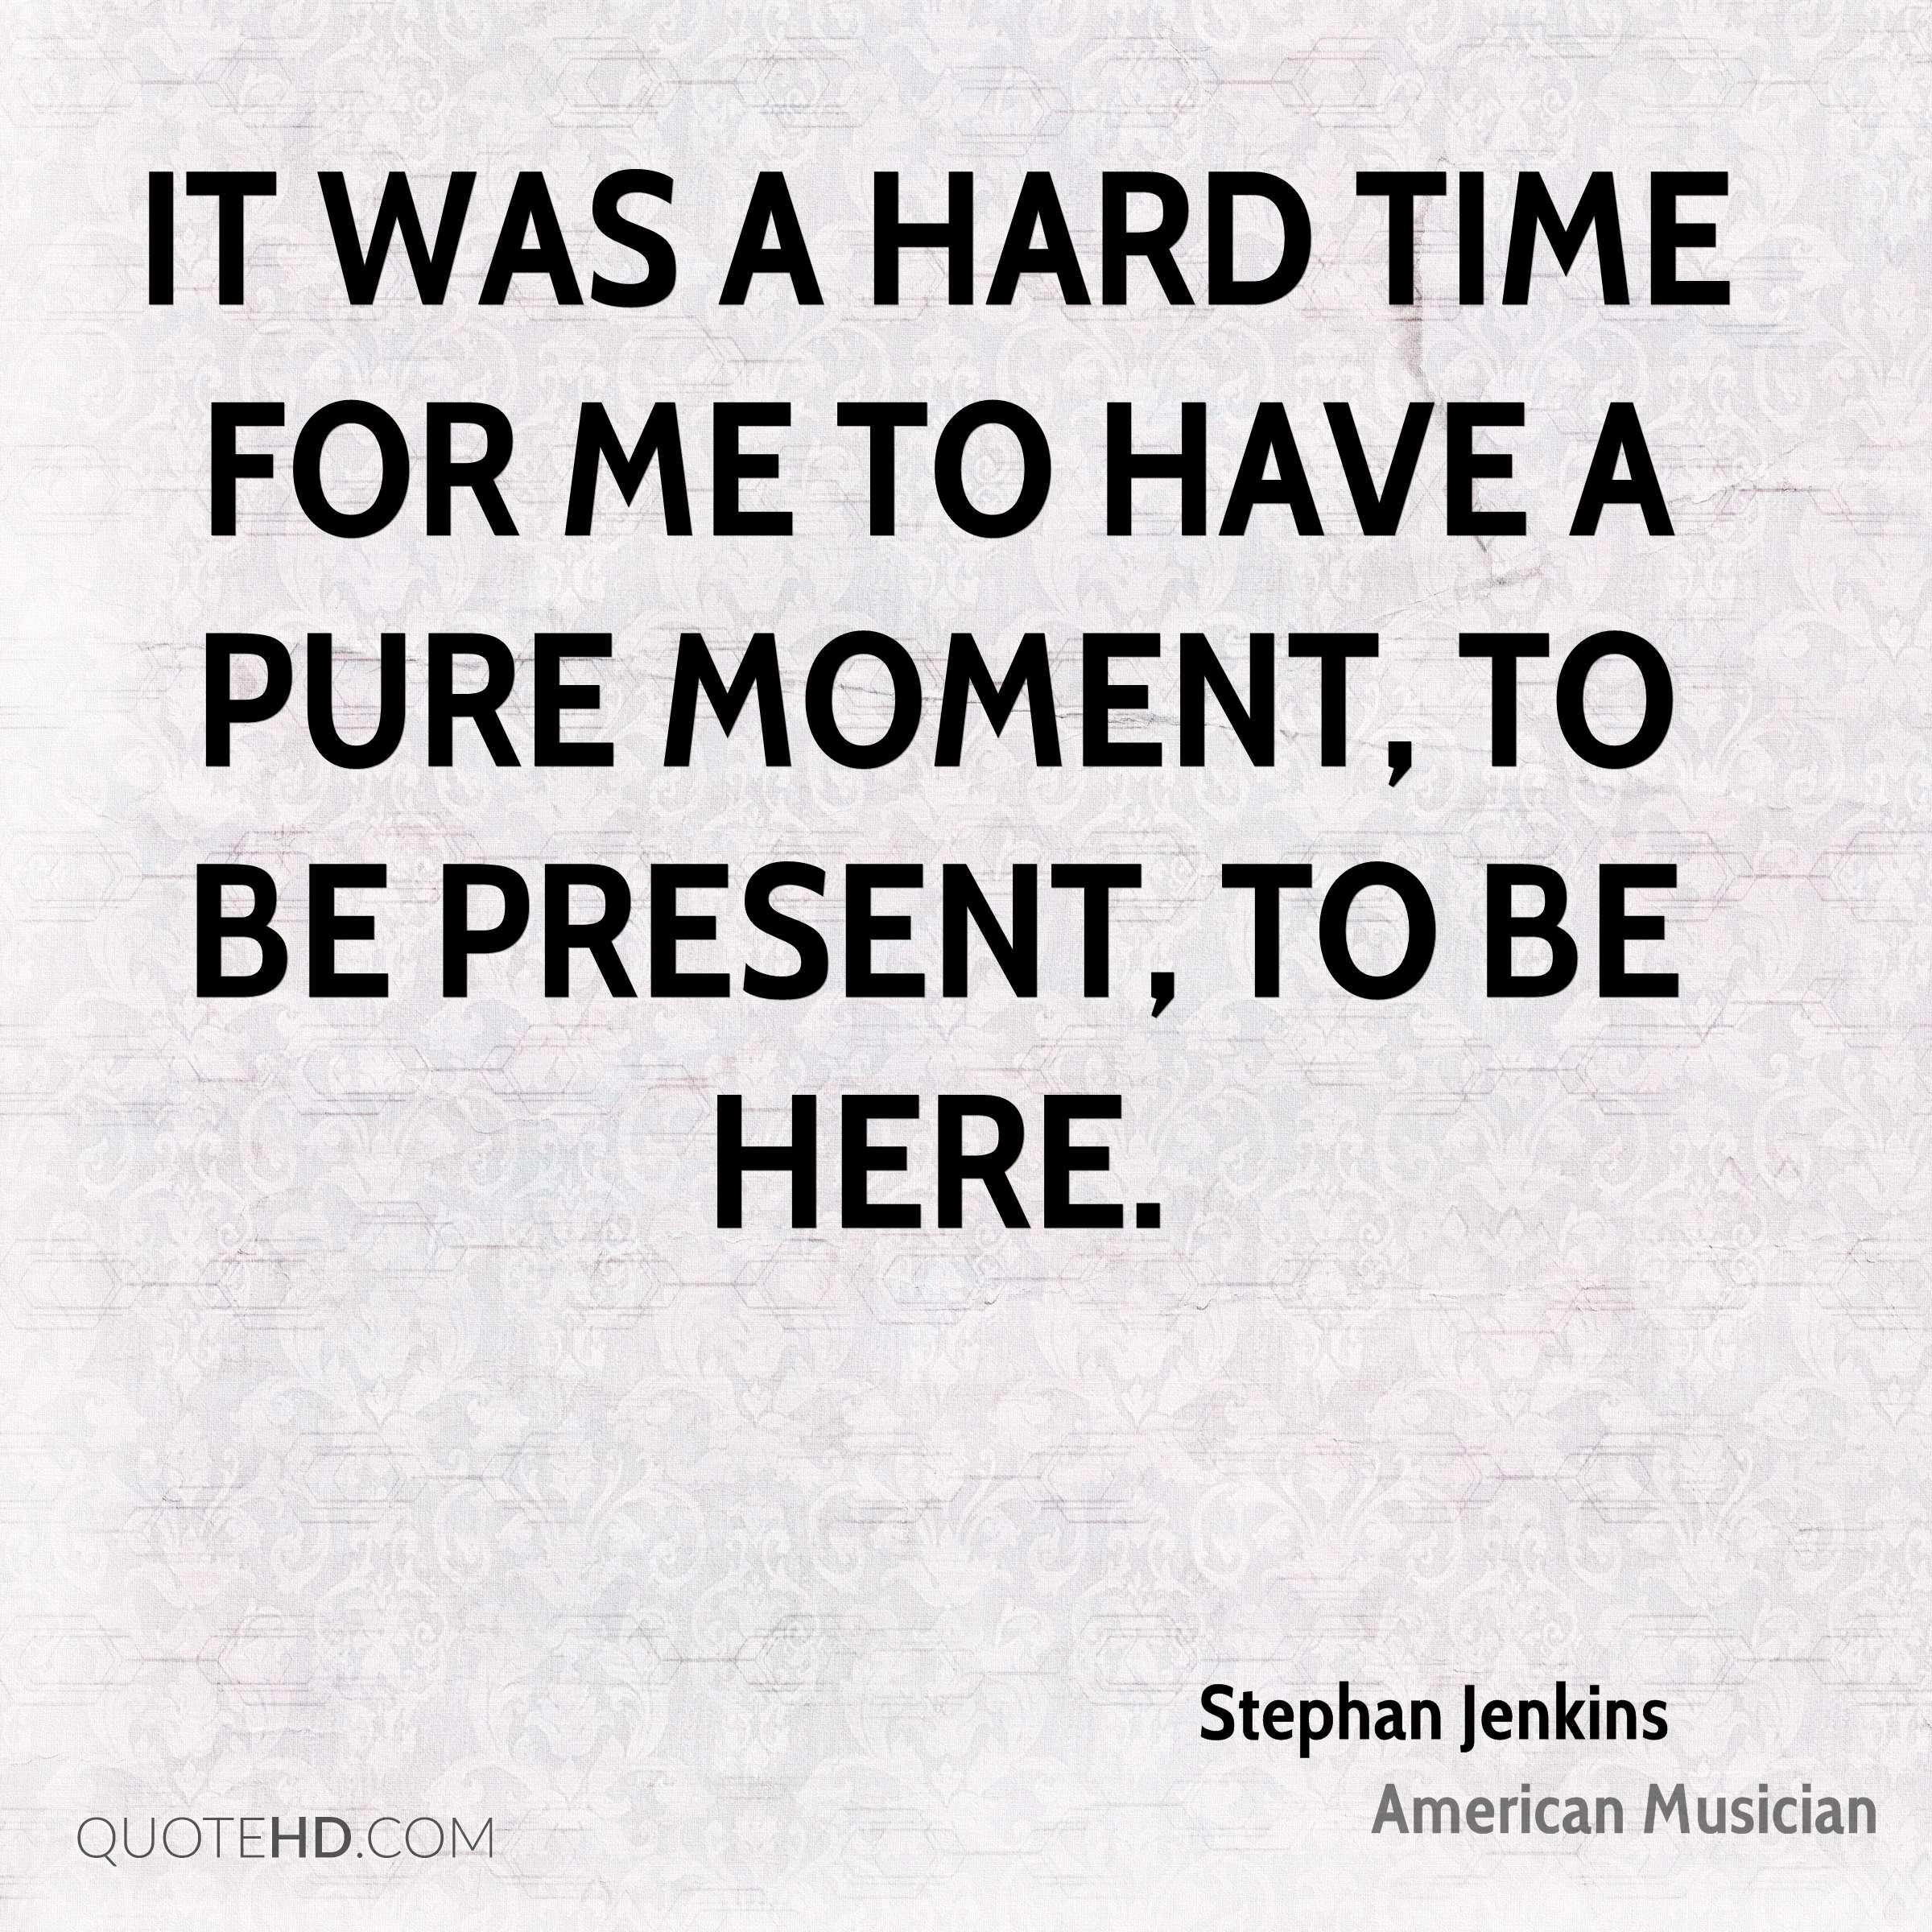 It was a hard time for me to have a pure moment, to be present, to be here.